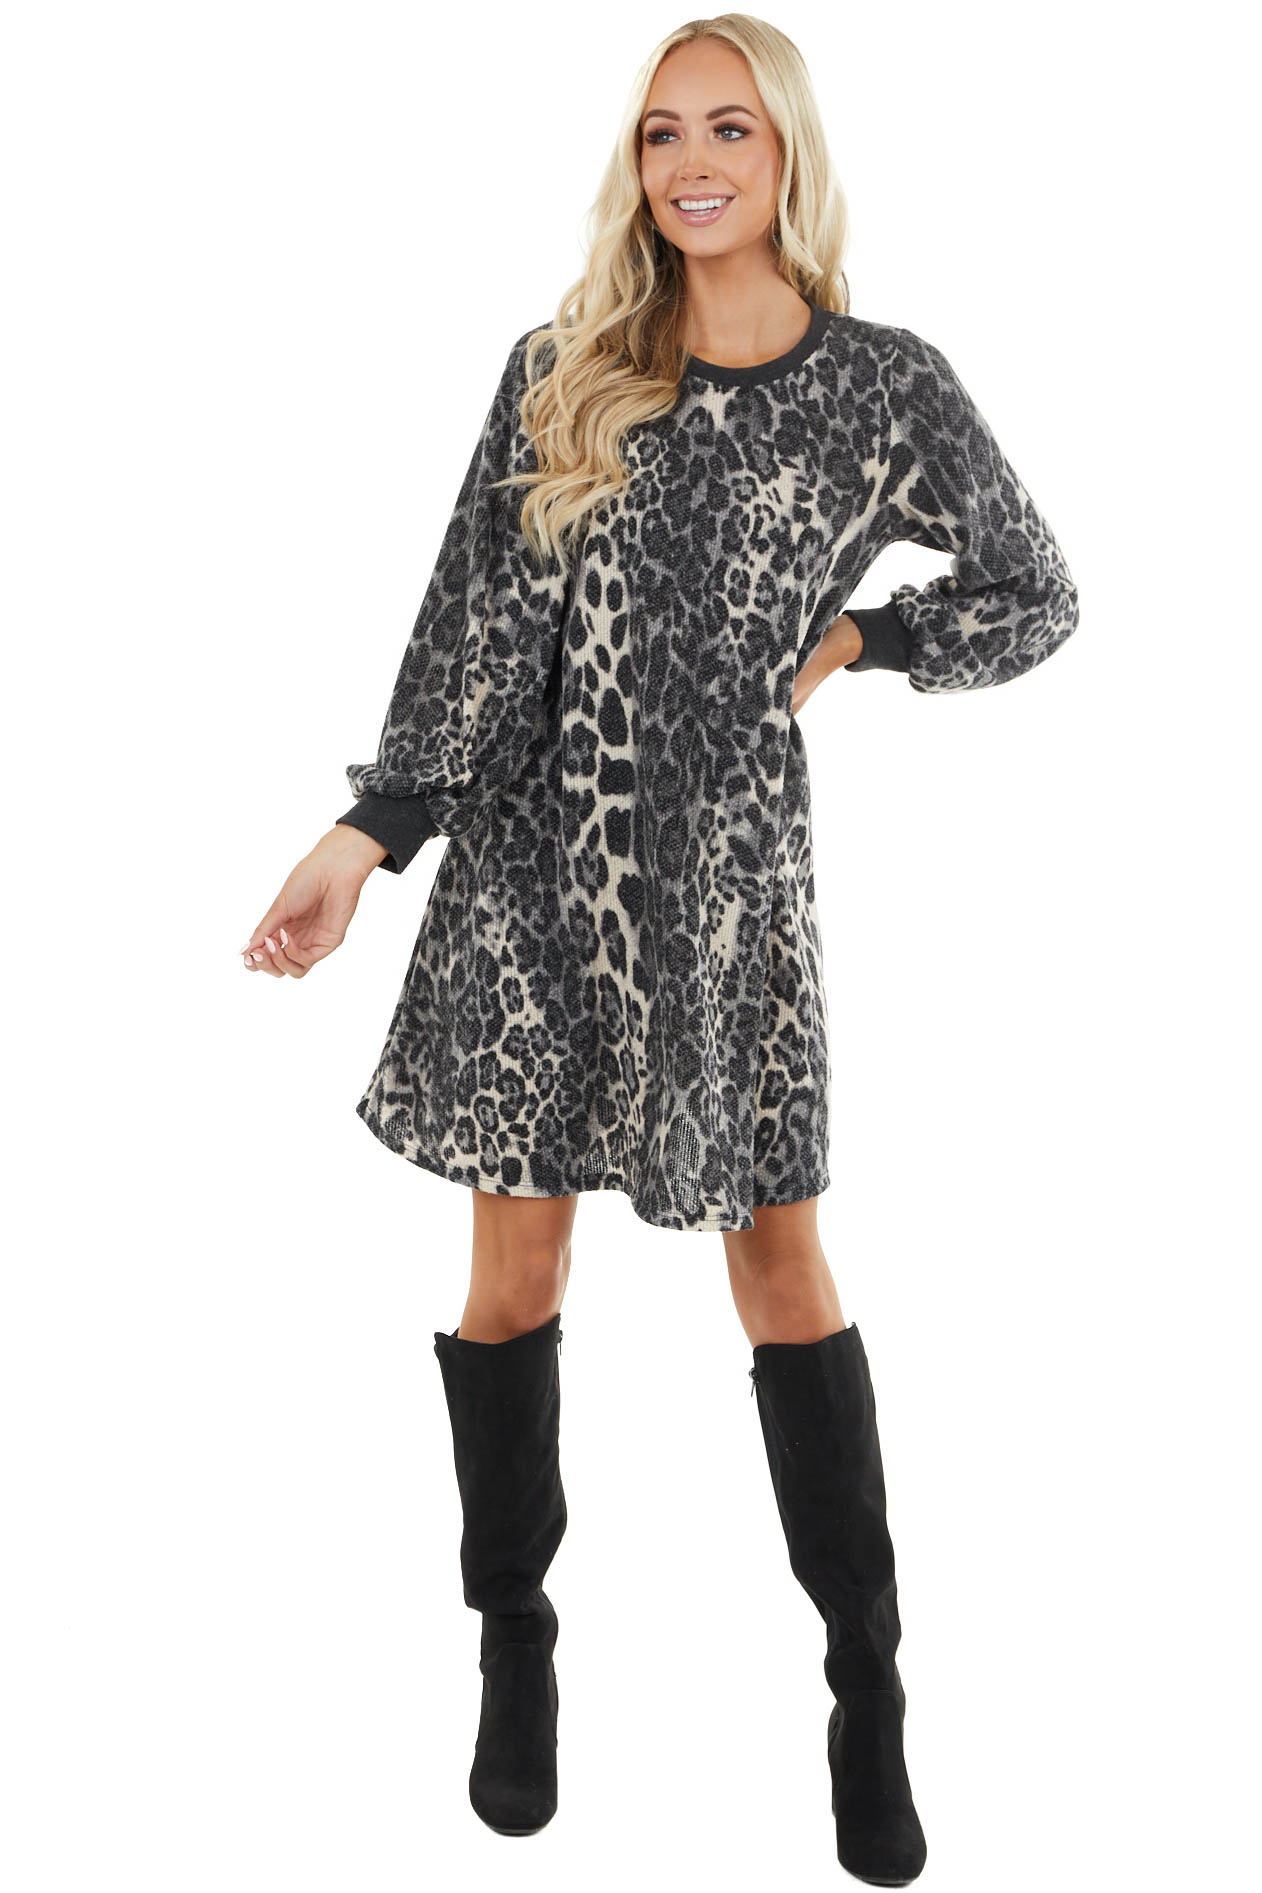 Grey Leopard Print Mini Swing Dress with Long Sleeves